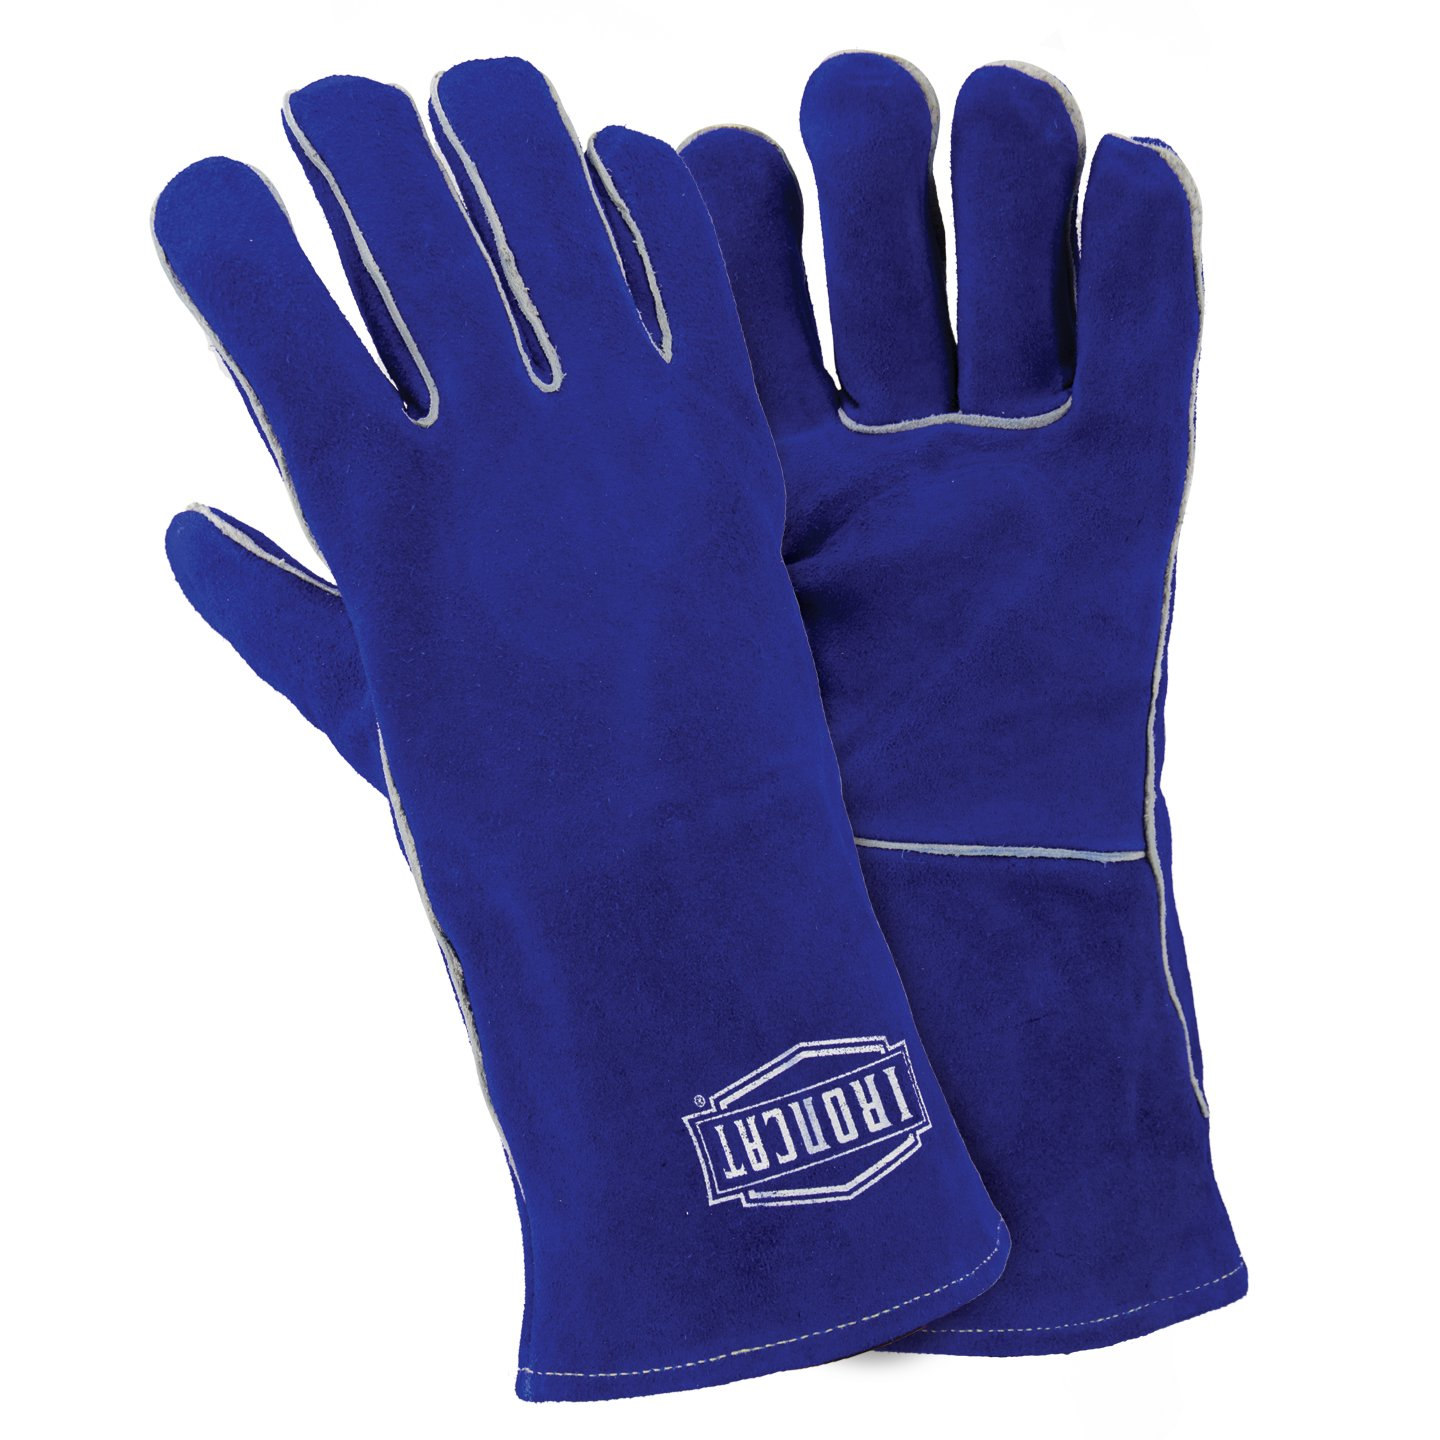 IRONCAT 9012 Ladies Insulated Slightly Select Cowhide Welding Gloves (Pack of 12 Pairs)